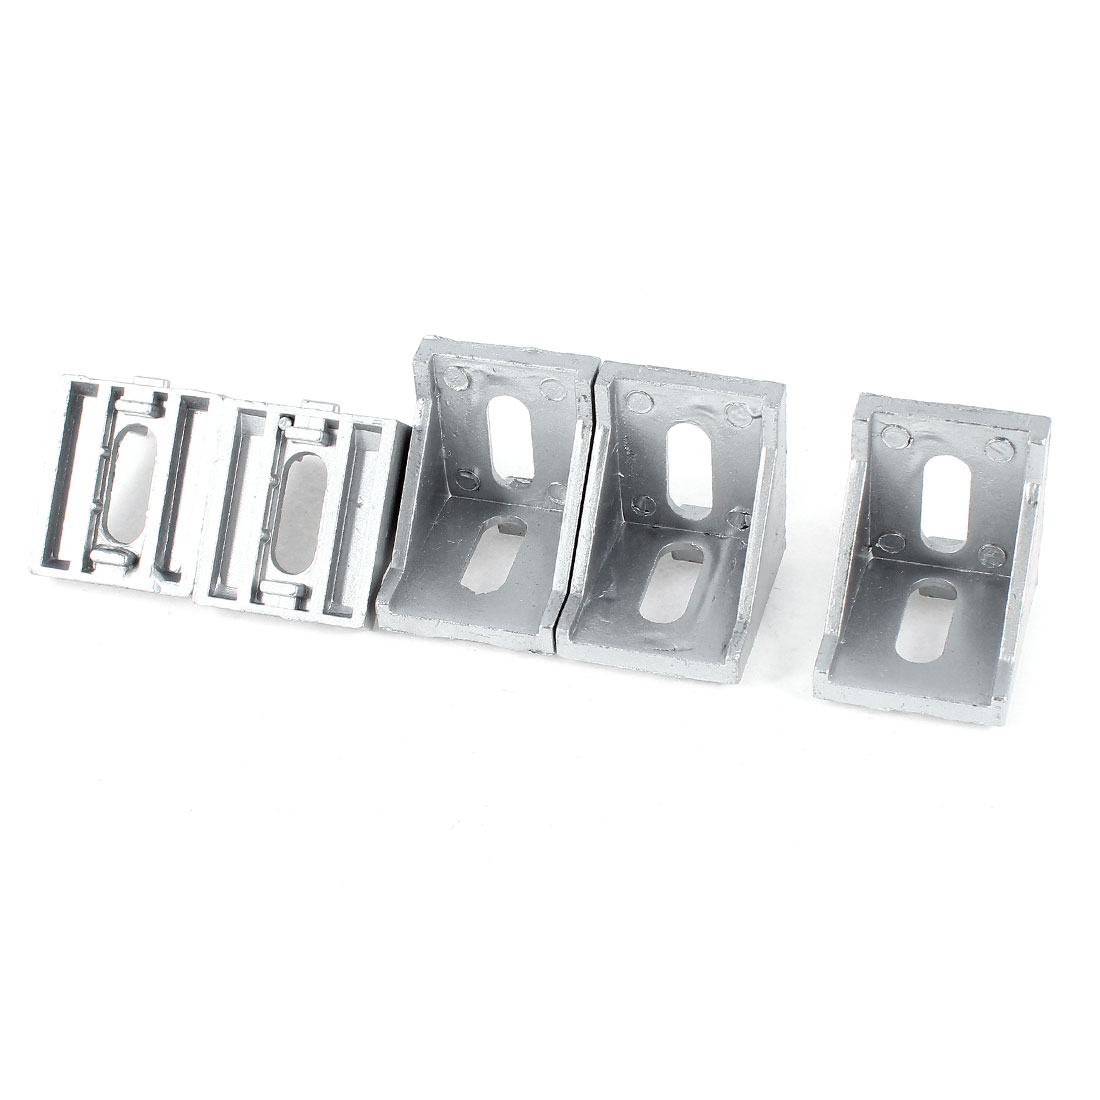 5 Pcs 40mm x 40mm 90 Degree Furniture Door Corner Brace Angle Bracket